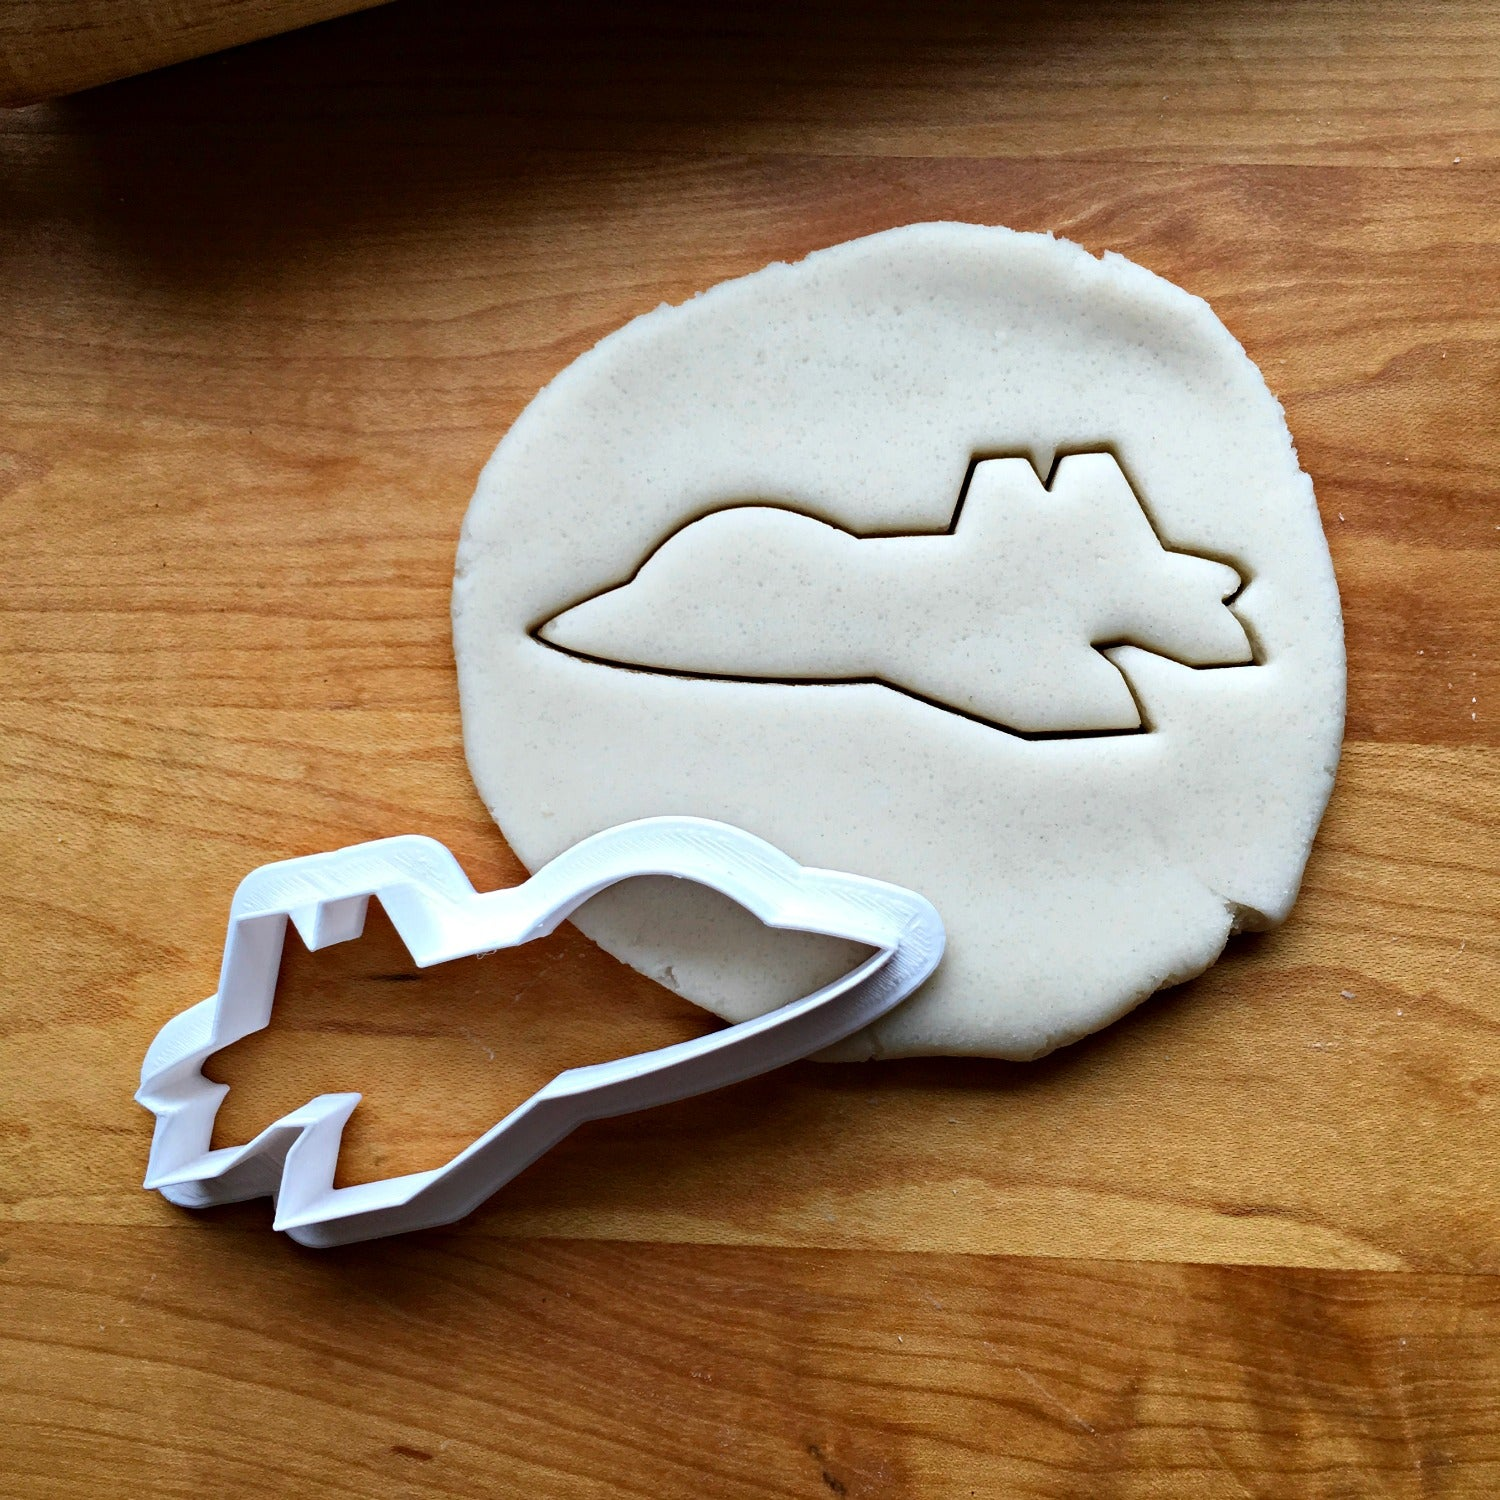 Fighter Jet Cookie Cutter/Multi-Size/Dishwasher Safe